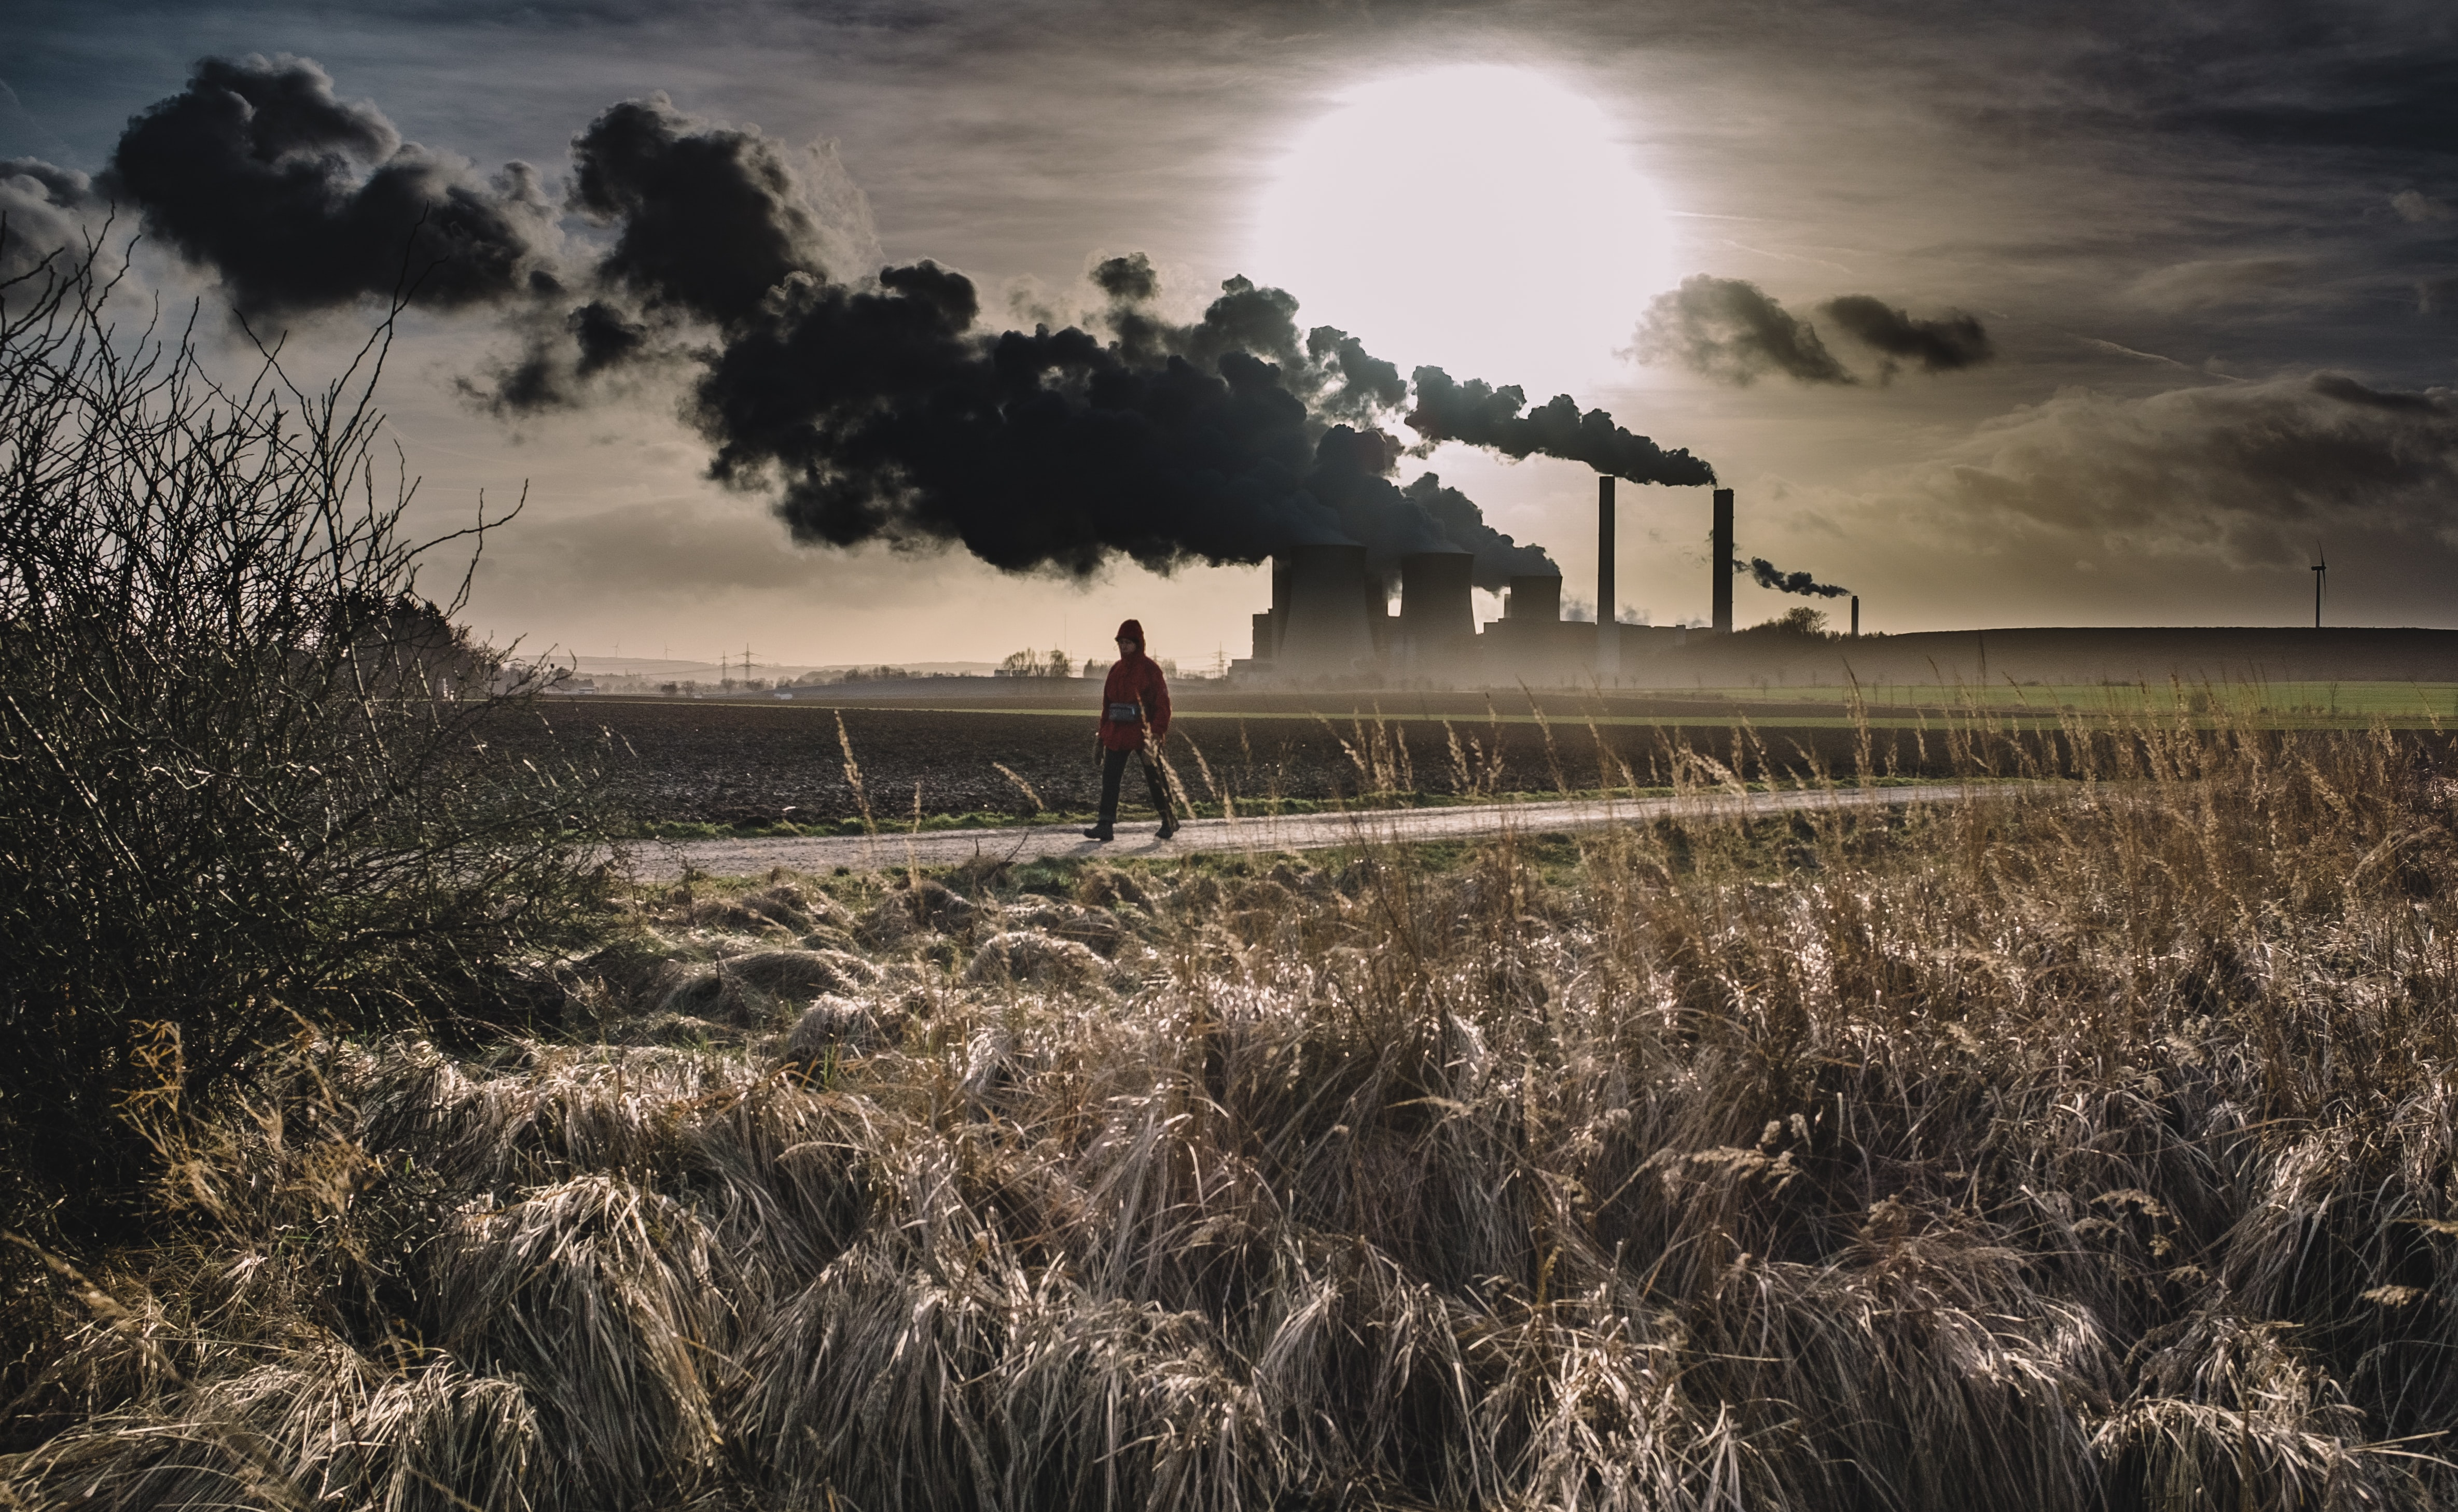 silhouette of person walking on pathway near factory